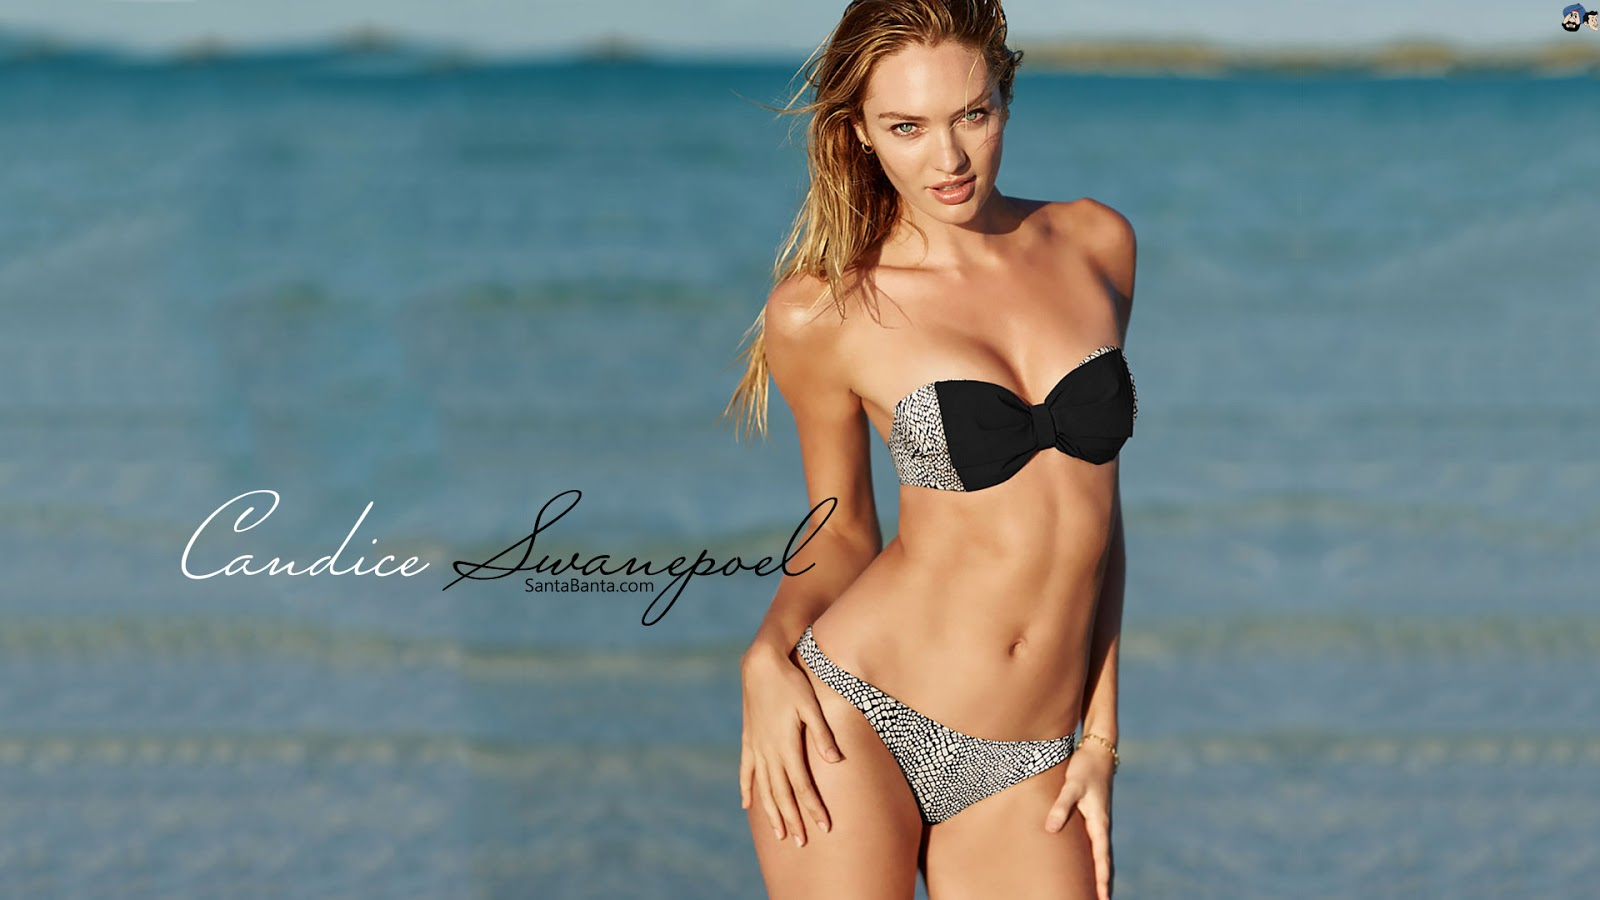 Pakistani Girls Wallpapers Download Candice Swanepoel Hd Wallpapers Most Beautiful Places In